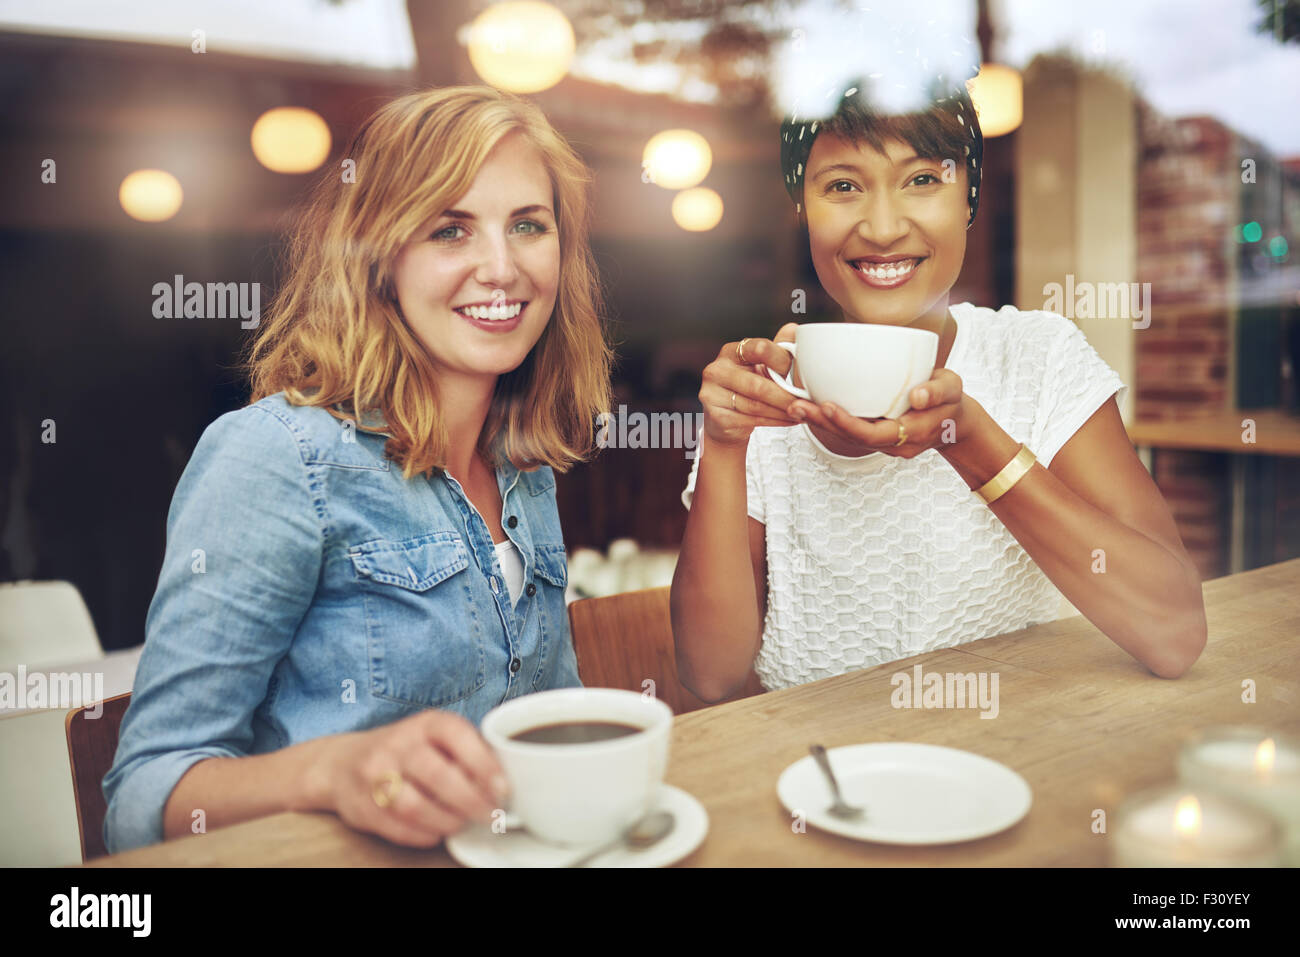 Attractive young multi ethnic female friends sitting together enjoying coffe at a table in a coffee shop smile happily - Stock Image